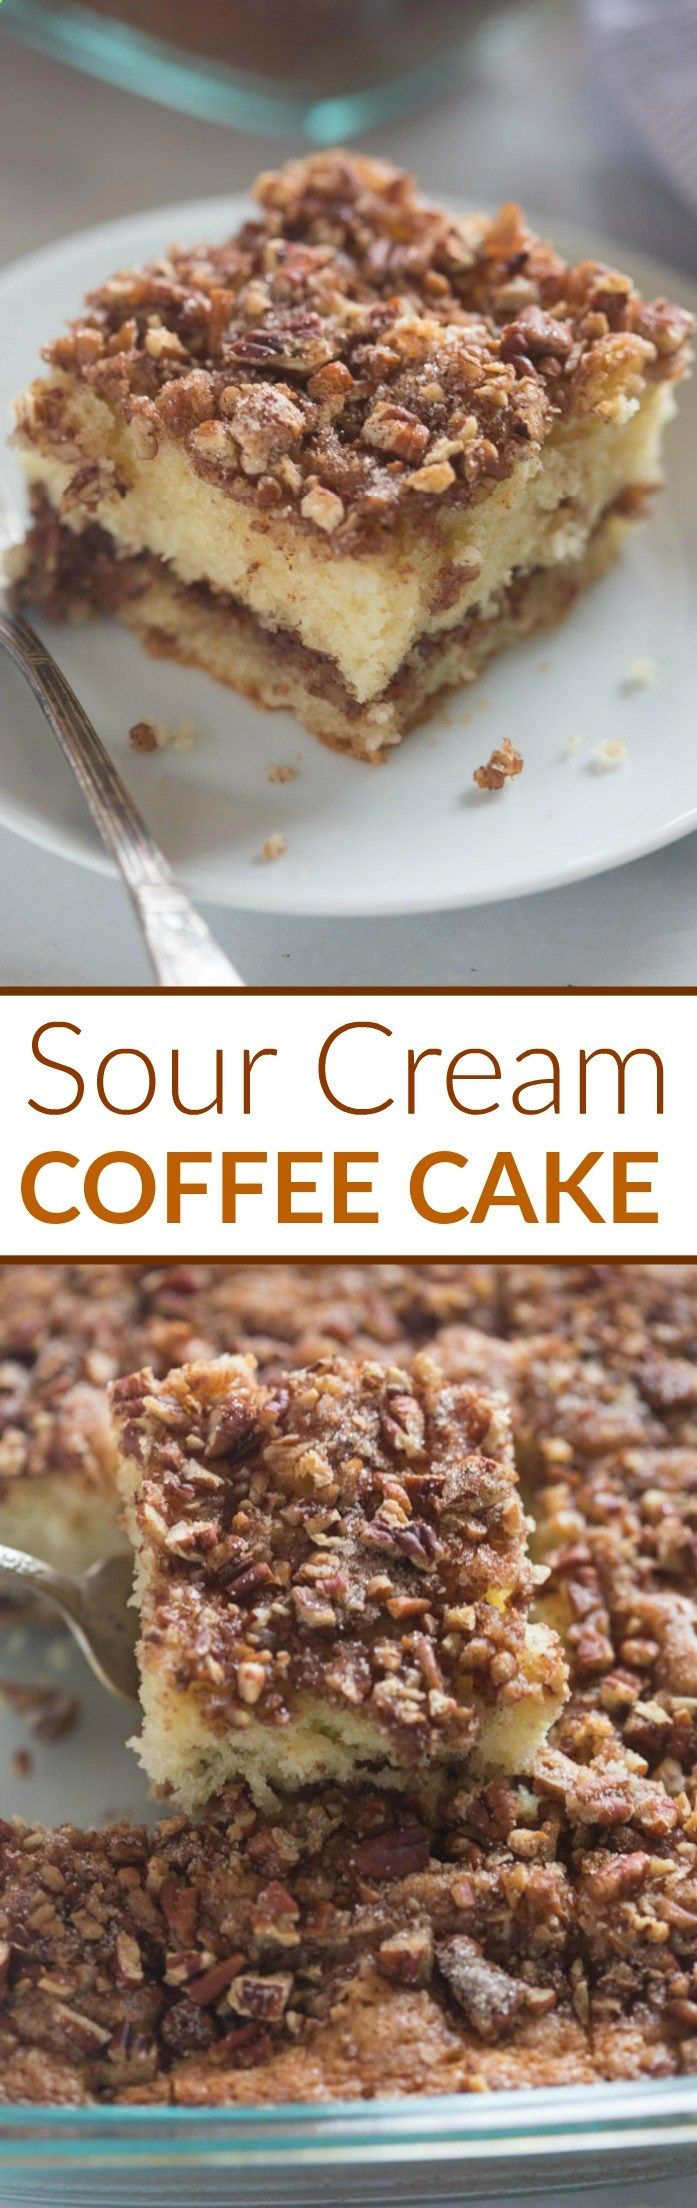 This Sour Cream Coffee Cake is not only incredibly EASY to make, its absolutely delicious! A tender crumb cake with cinnamon pecan topping. You wont be able to stop at just one piece.  Tastes Better From Scratch